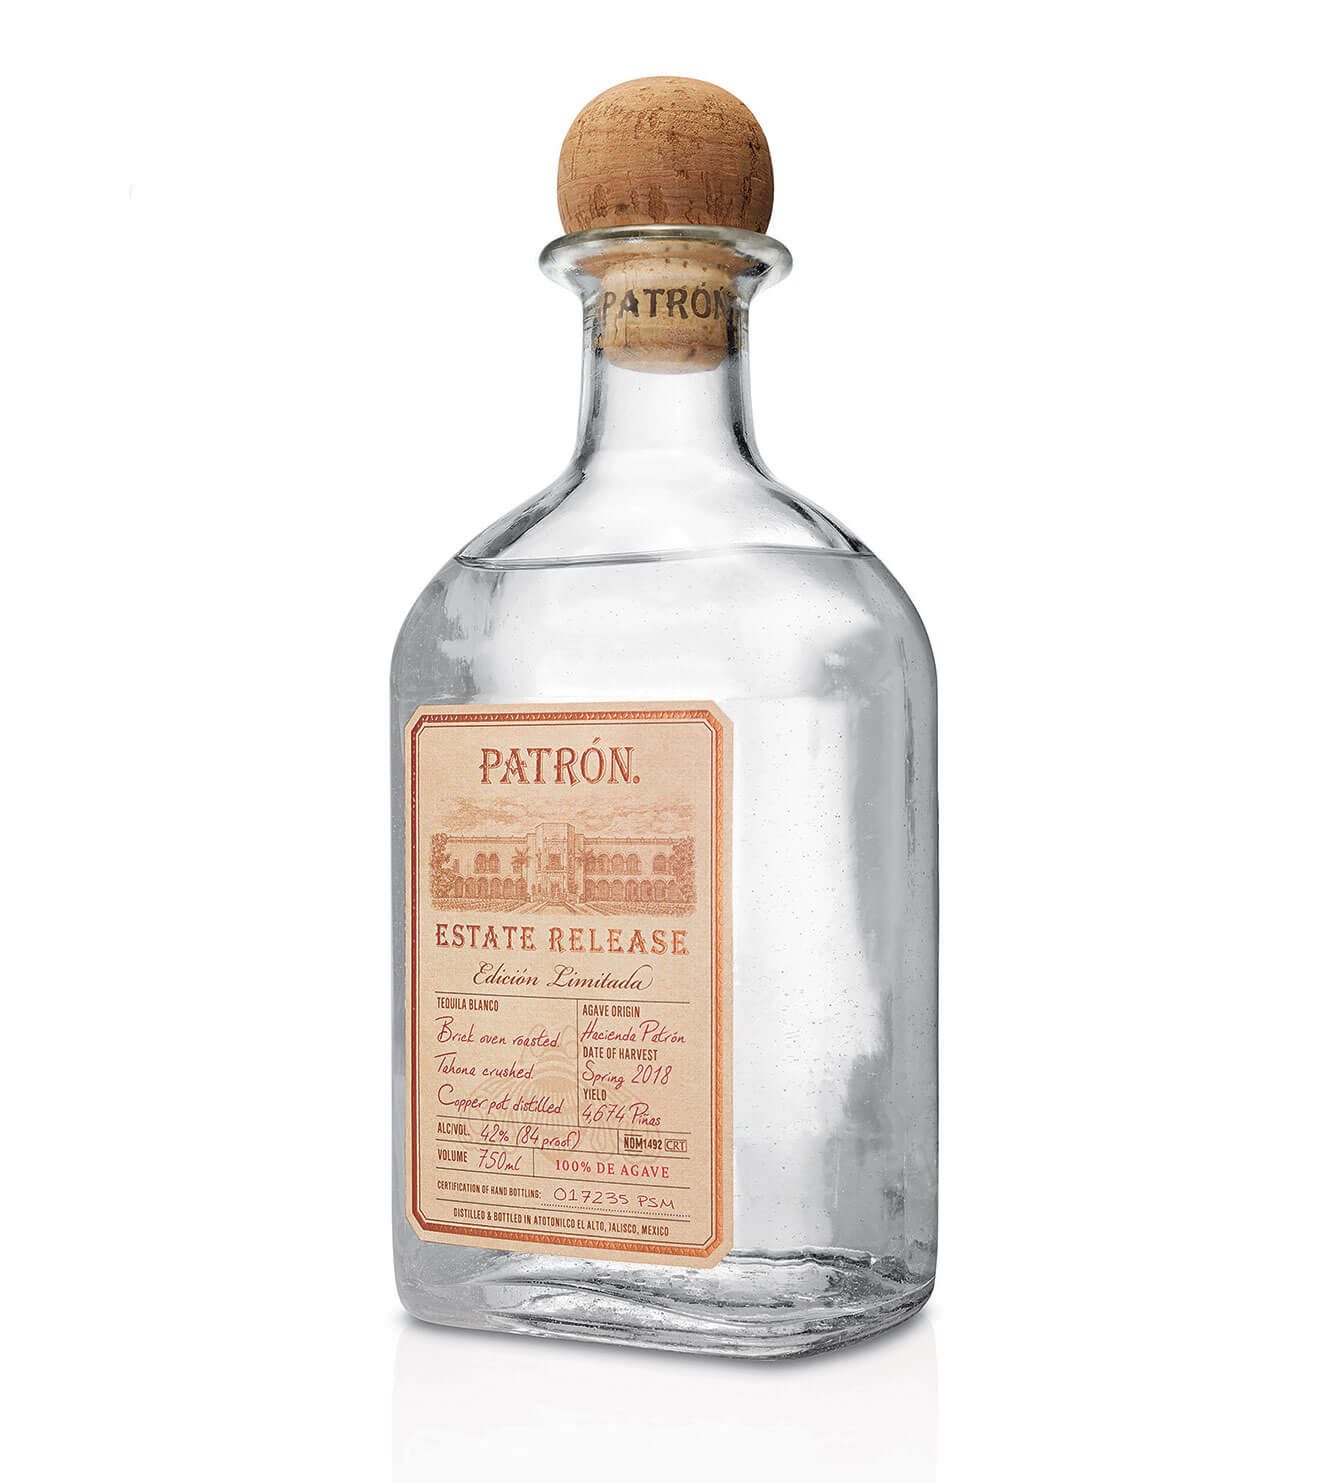 Patrón-Estate, limited release bottle, white background